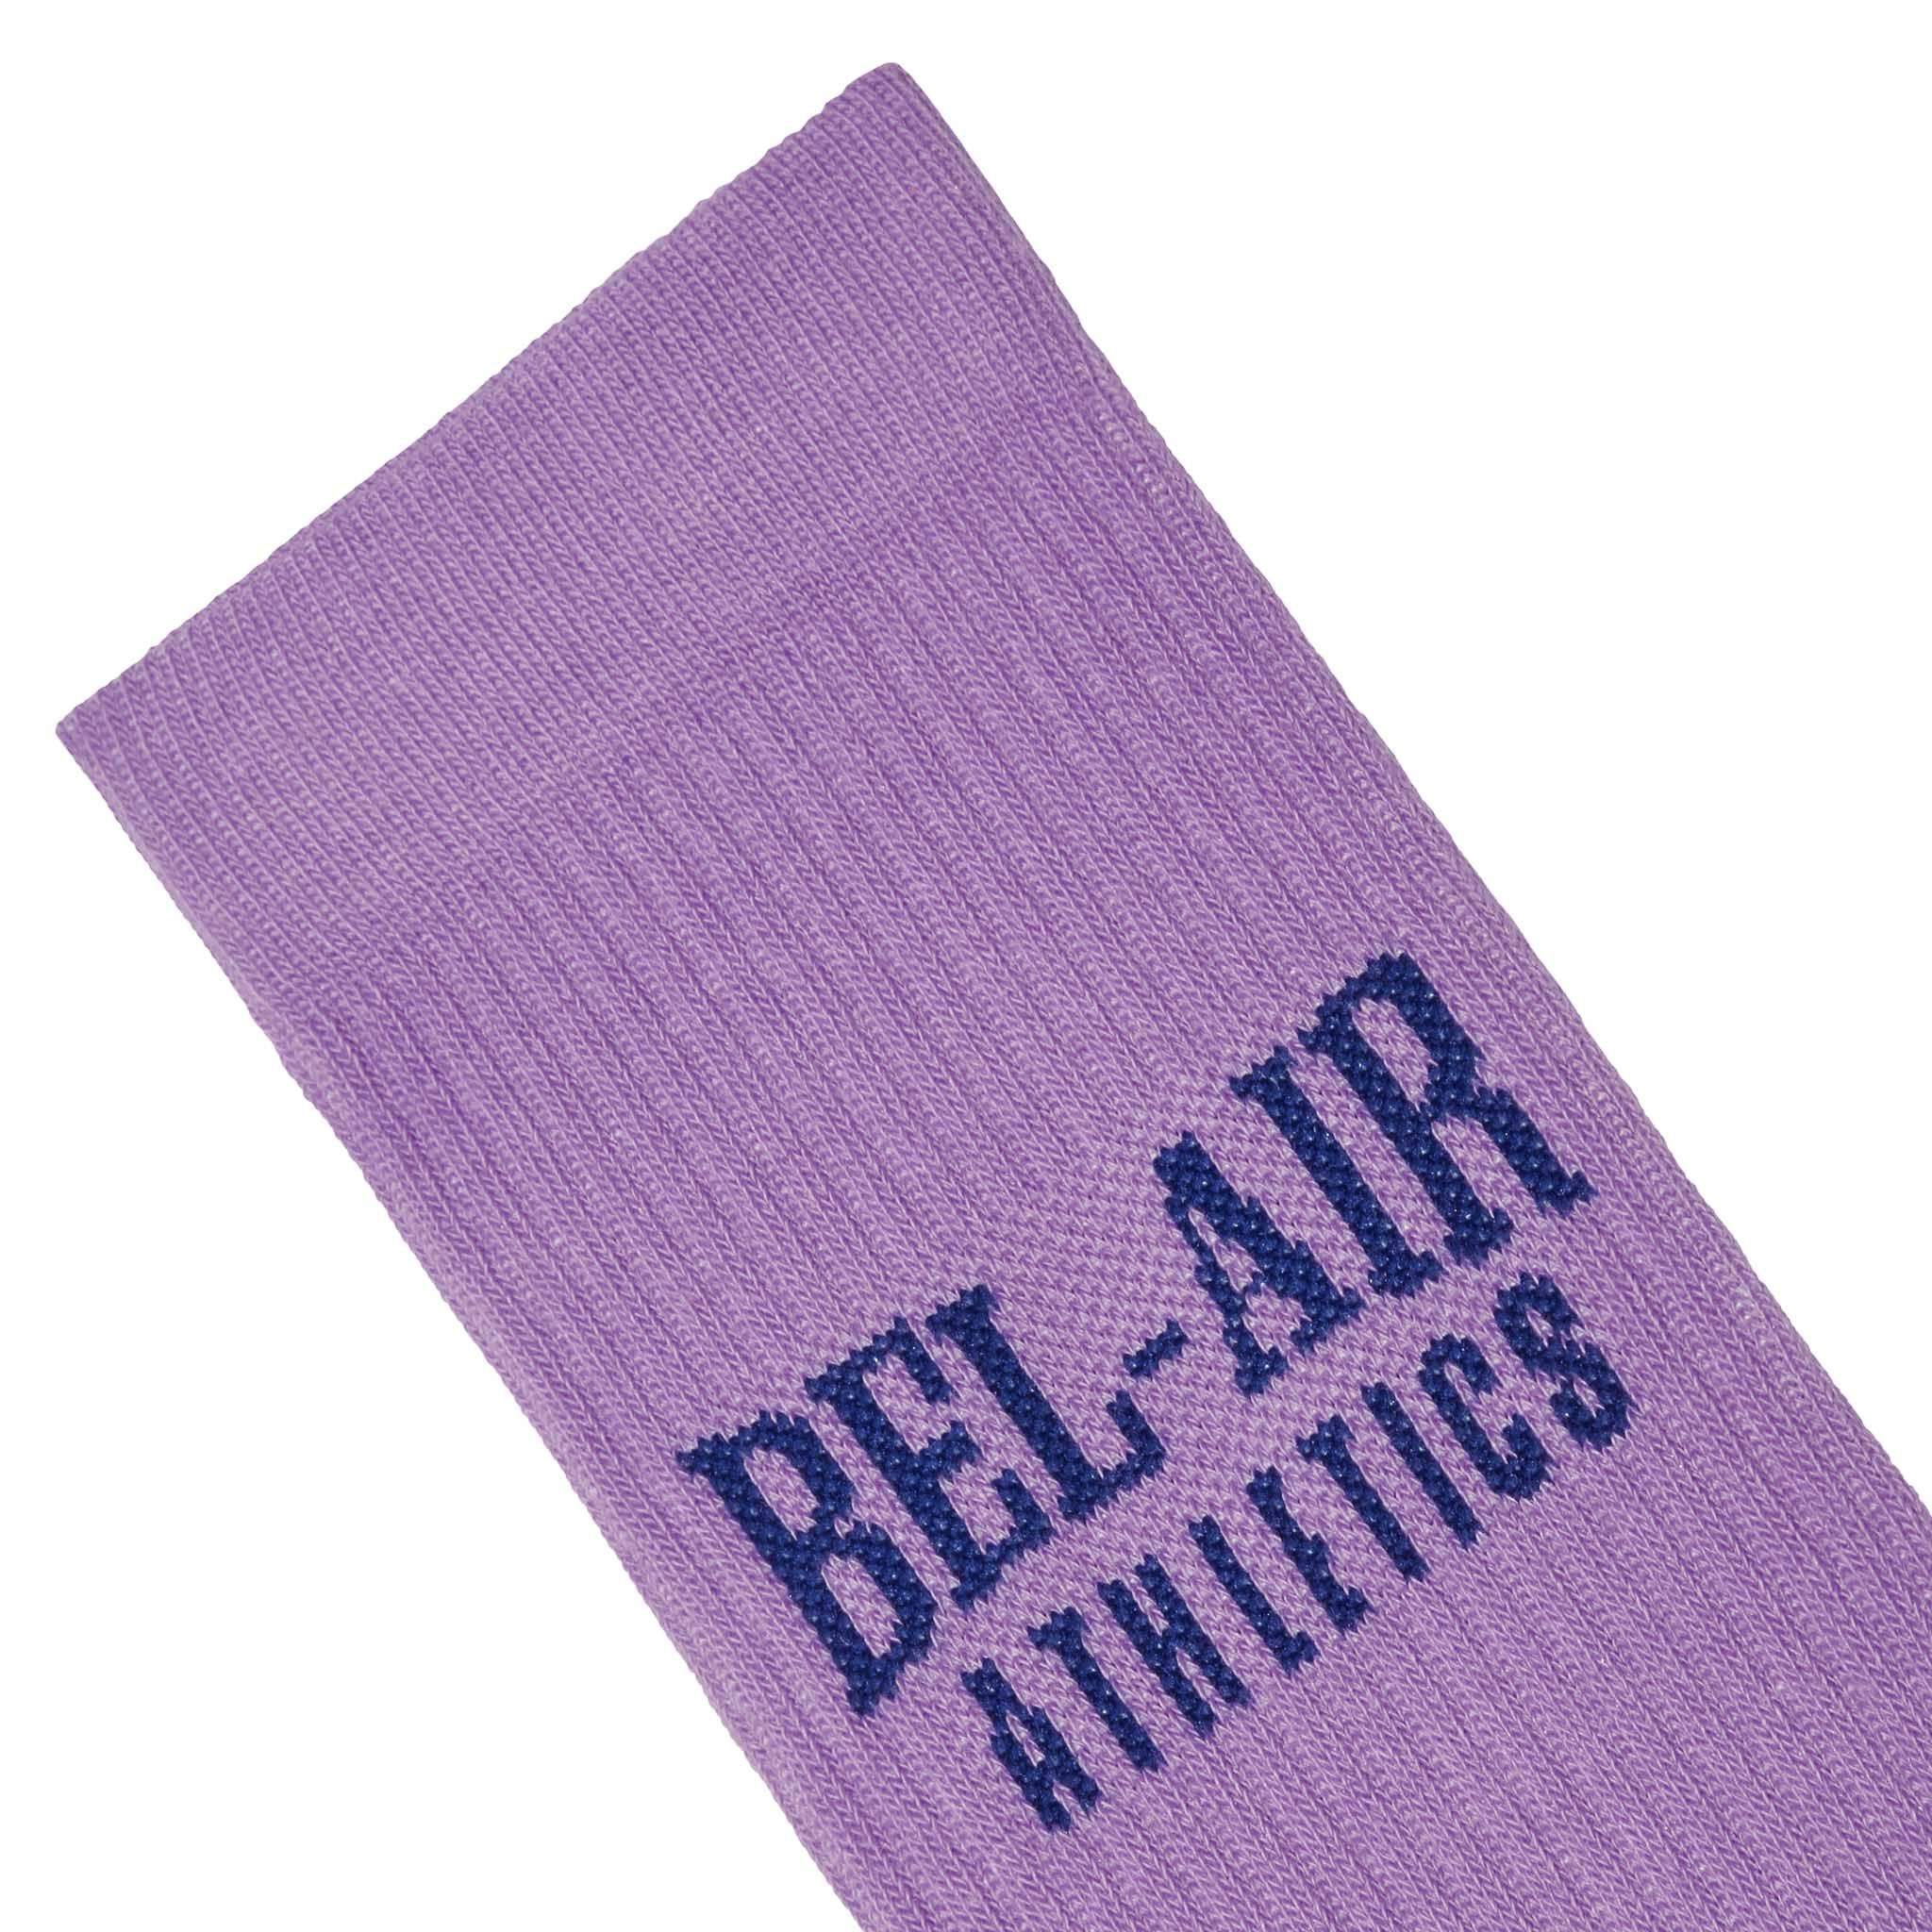 Bel Air Athletics Socks - Sorority Pink with Vintage black jacquard